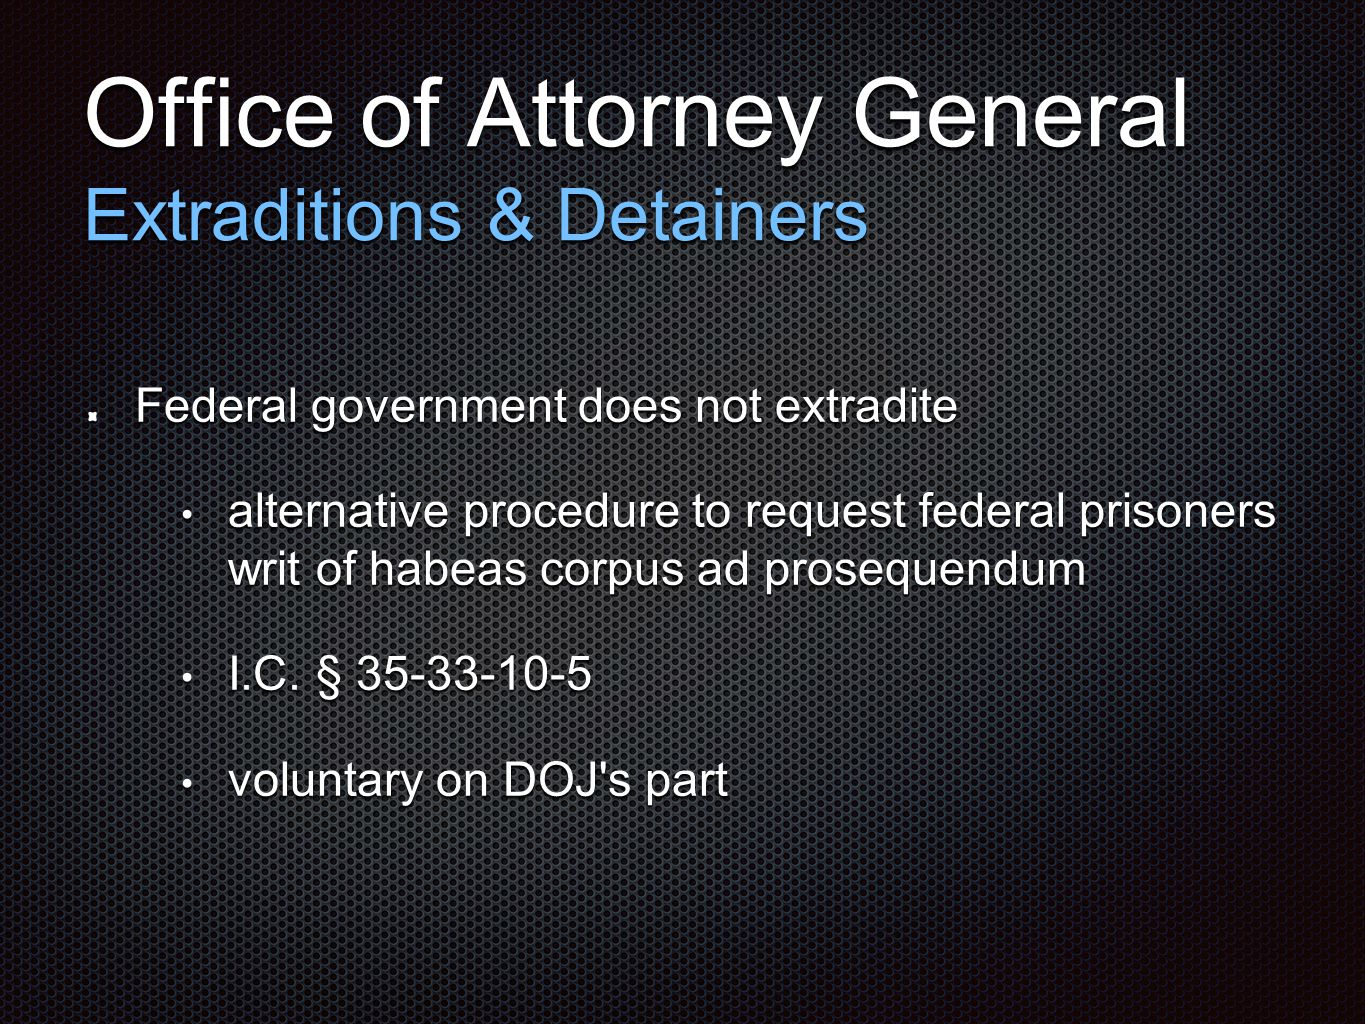 Office of Attorney General Extraditions & Detainers Federal government does not extradite alternative procedure to request federal prisoners writ of h